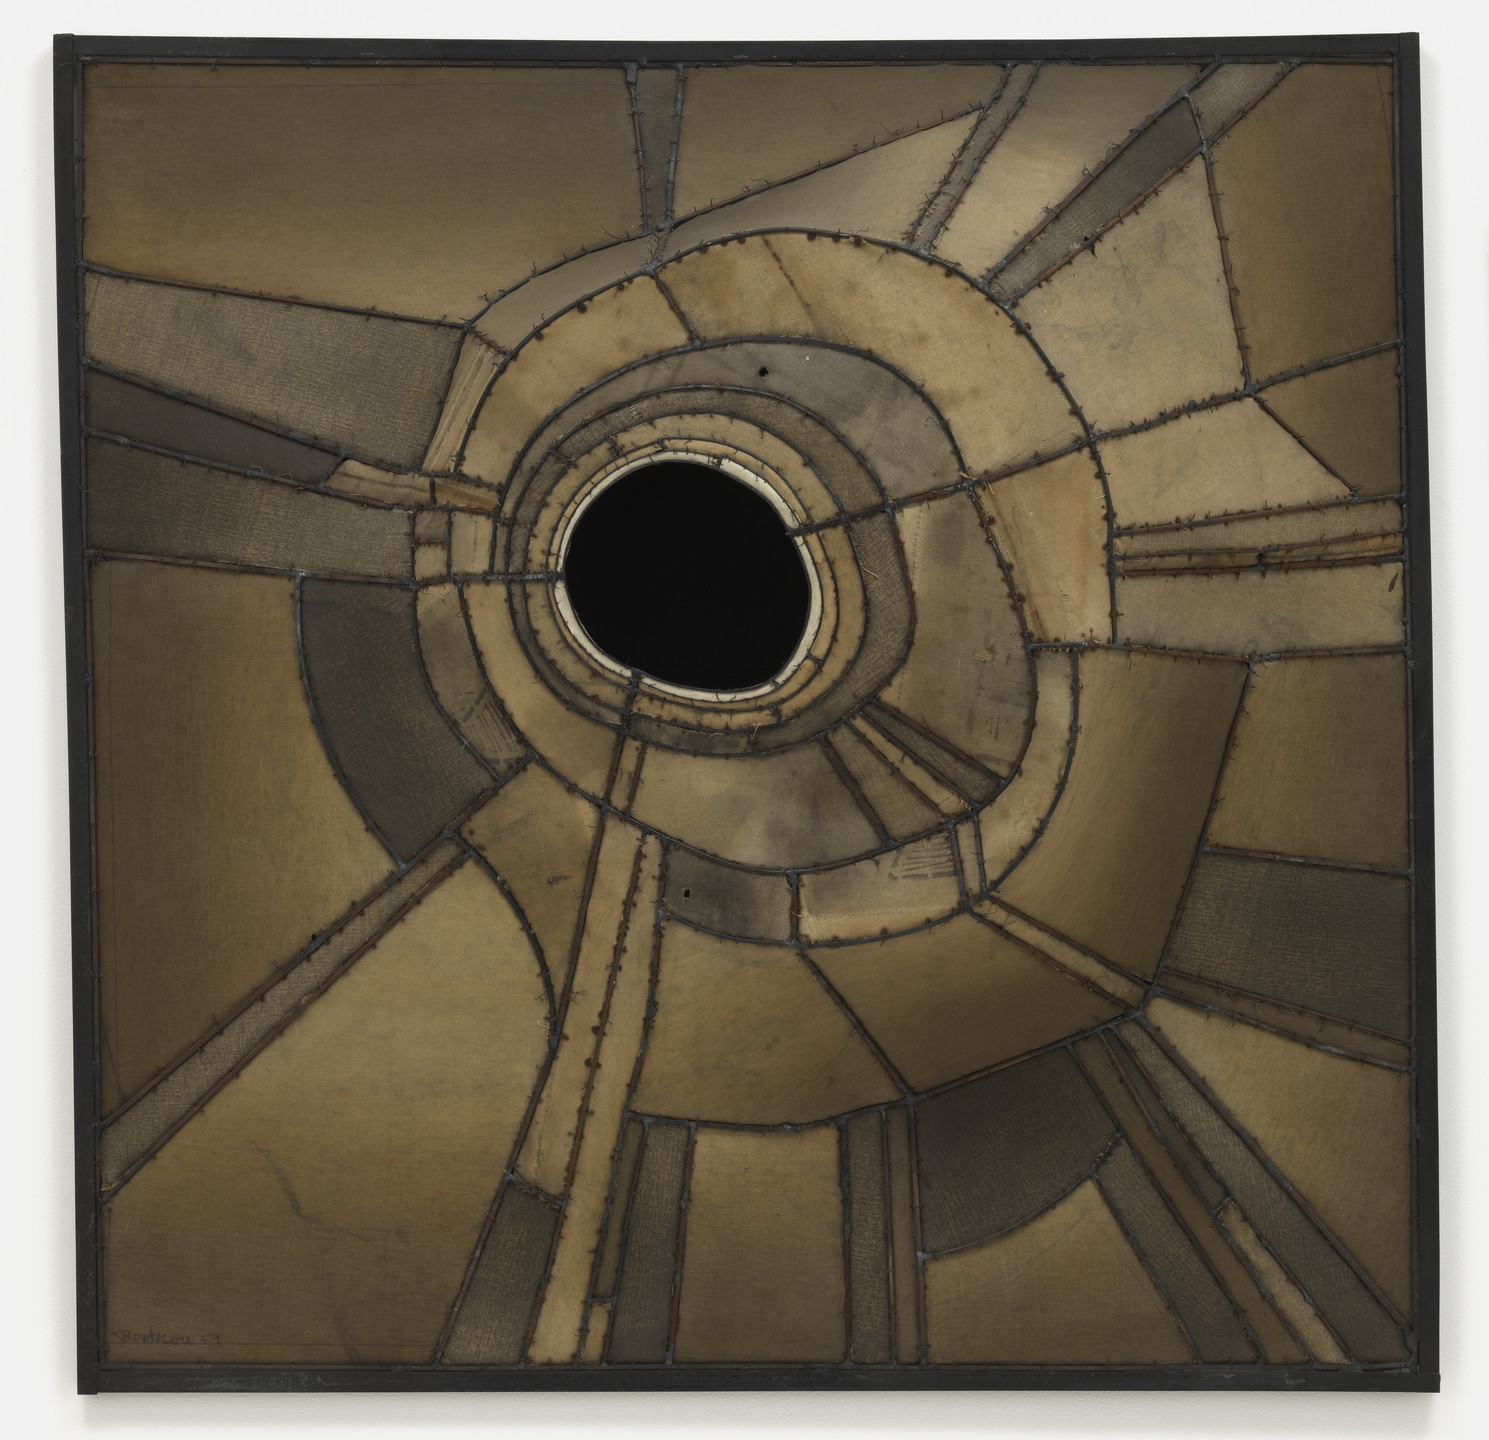 Lee Bontecou. Untitled. 1959